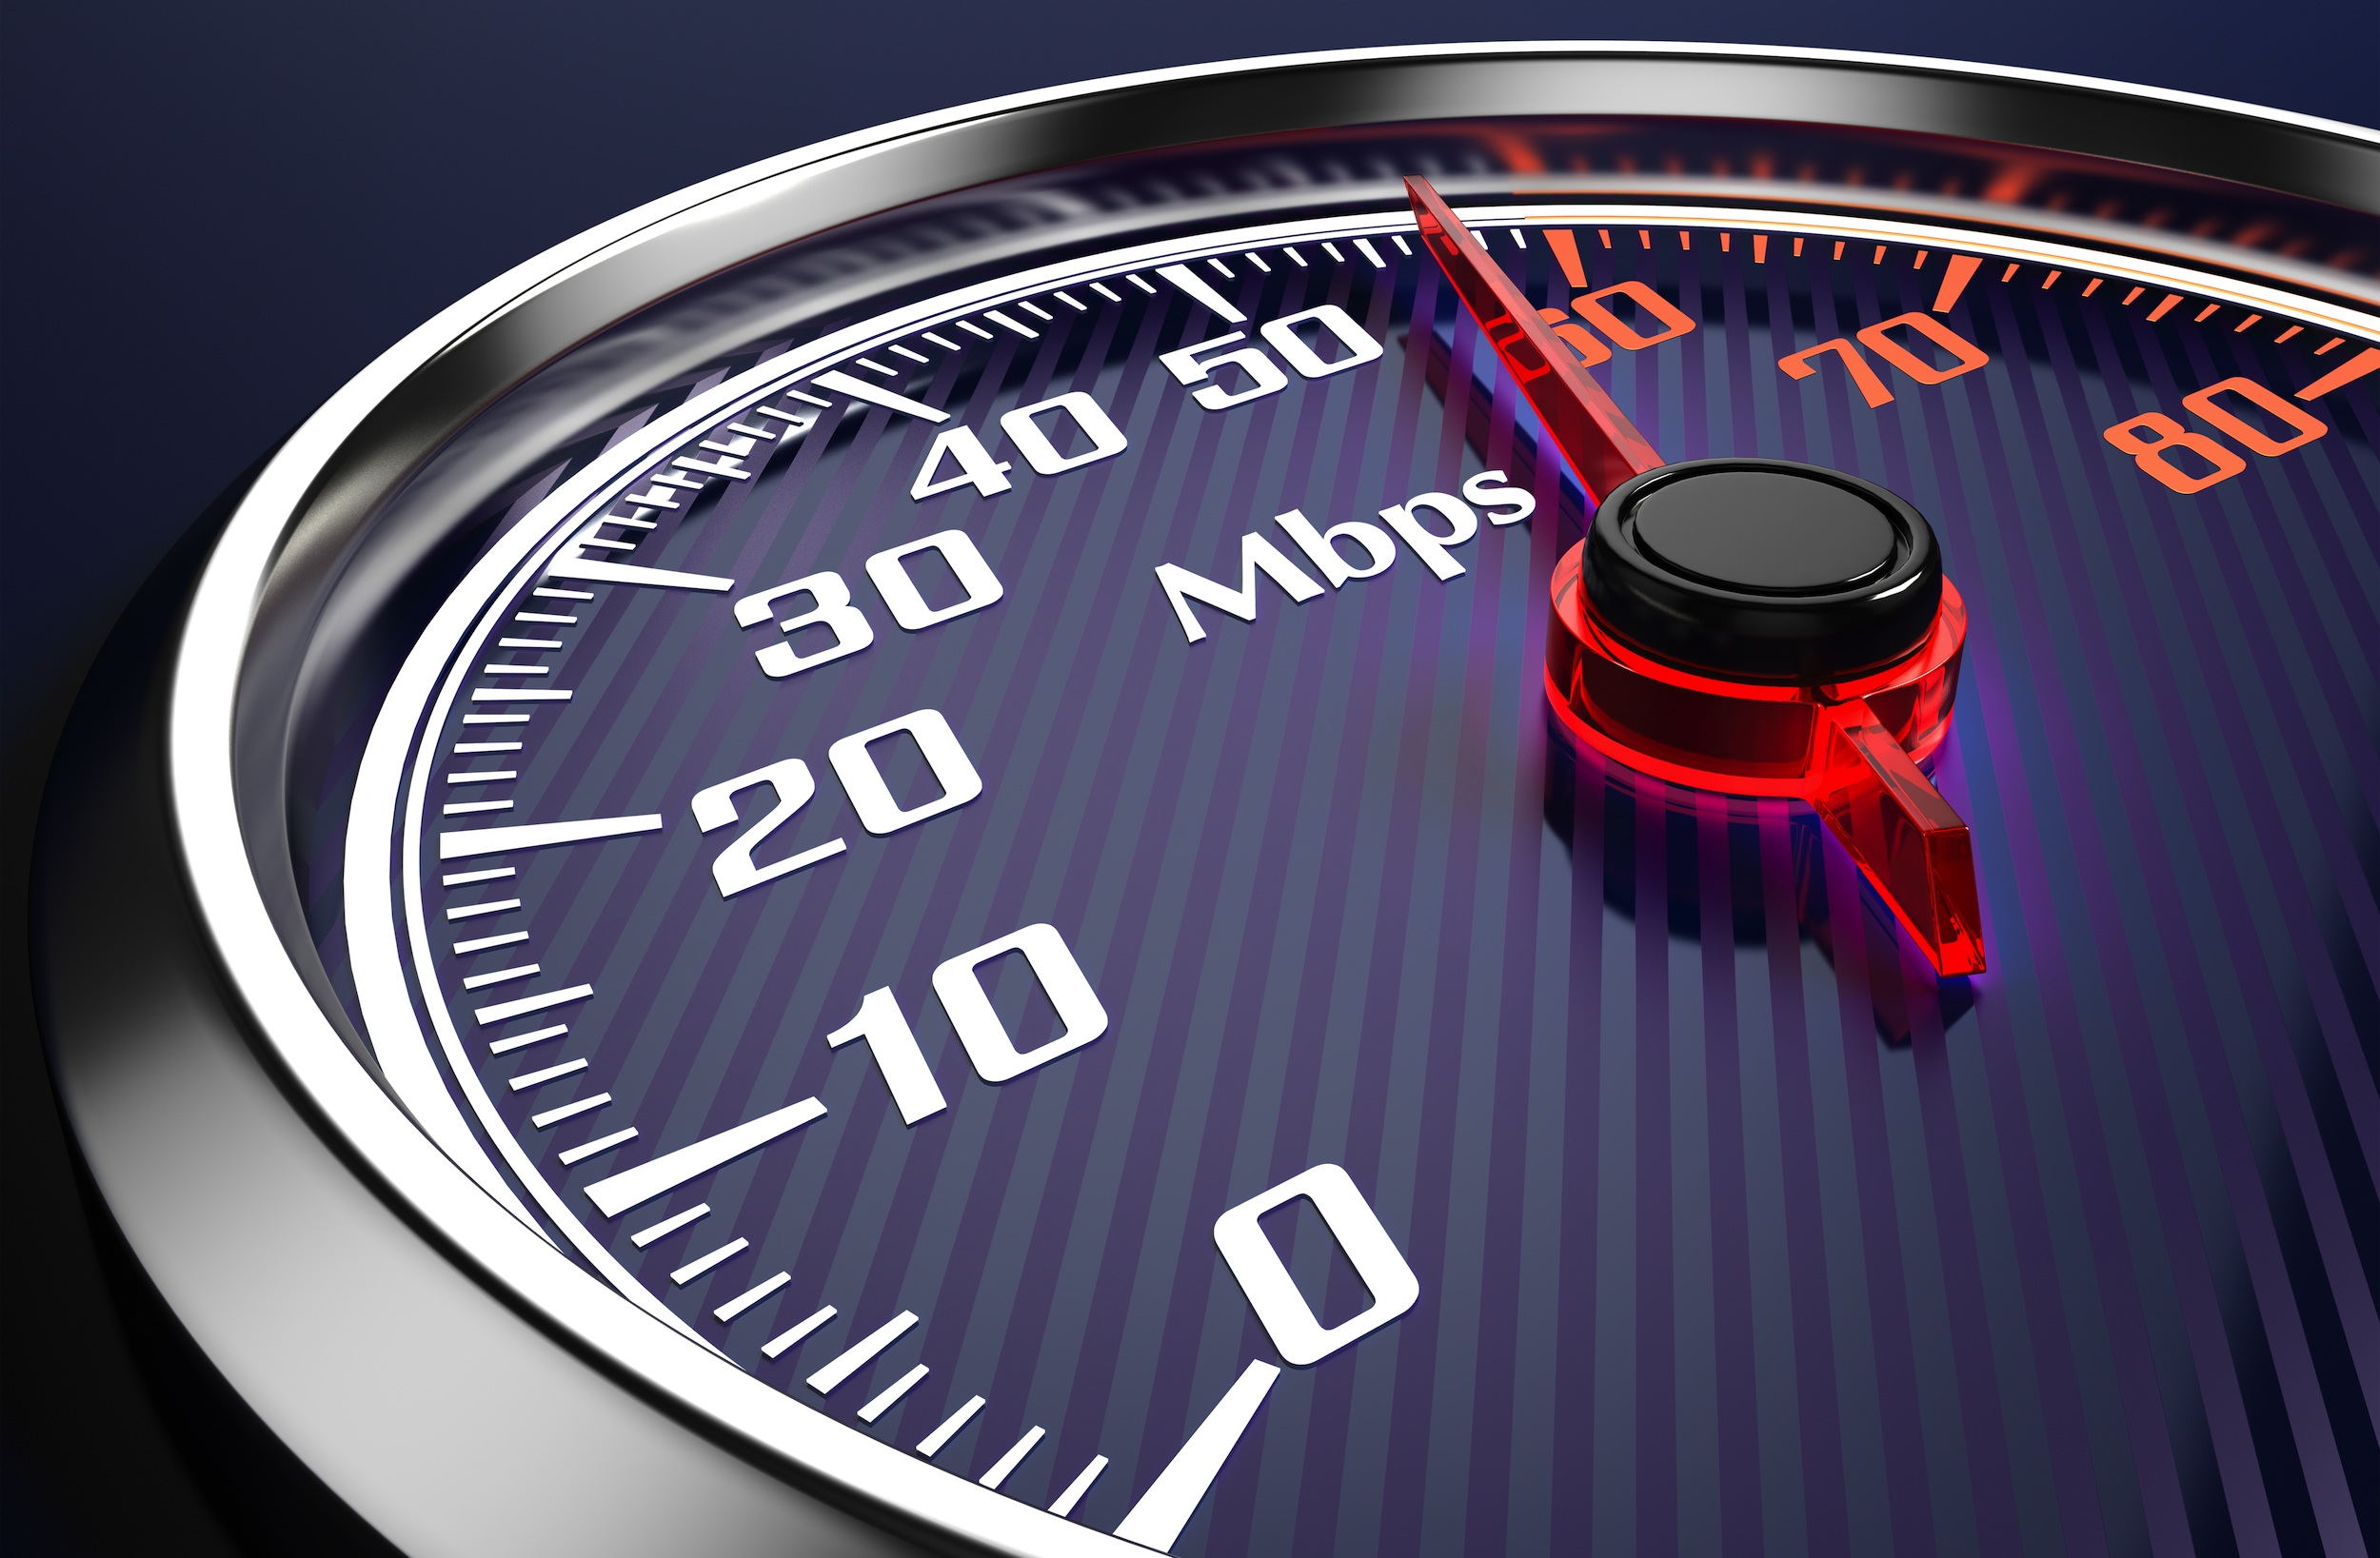 Internet speed meter v1 3 1 full version android